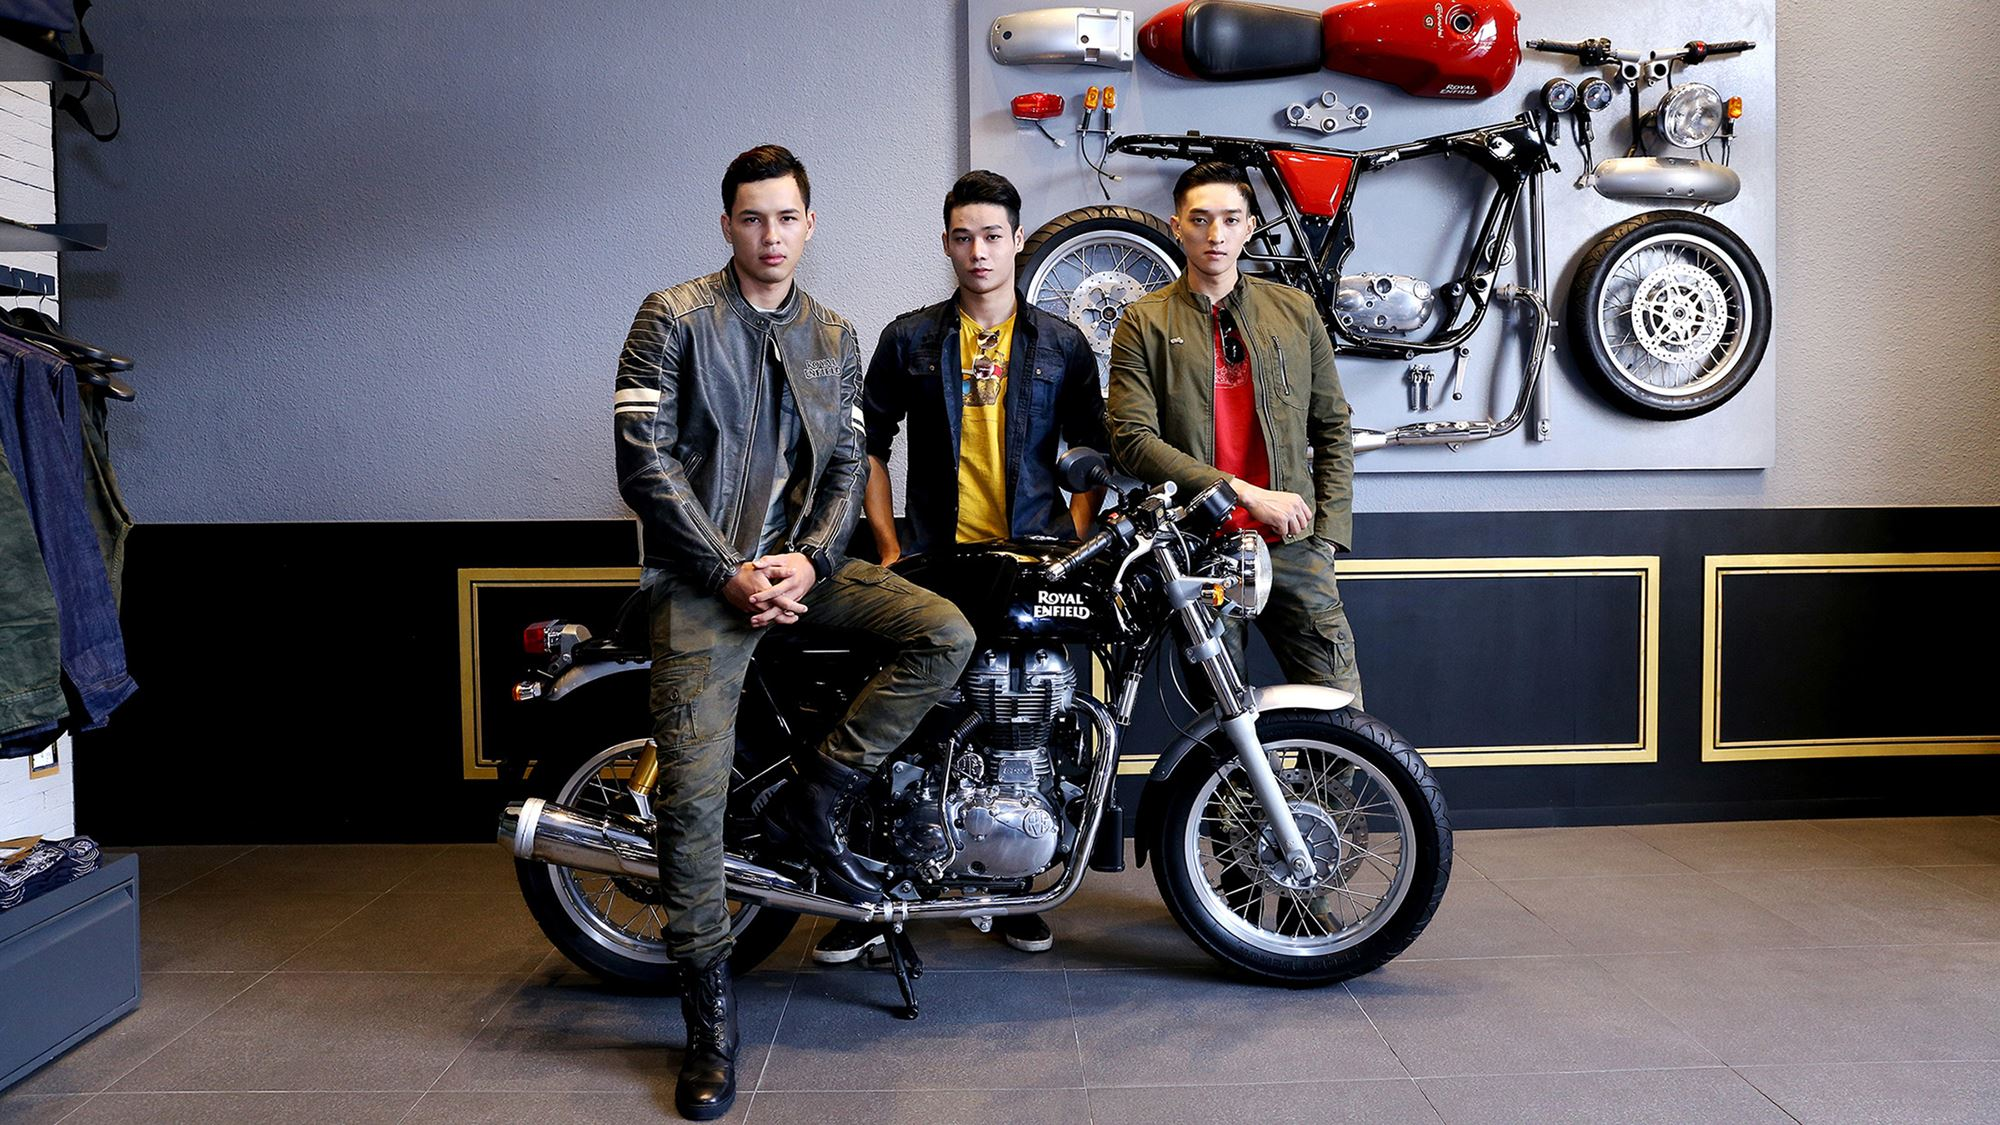 Royal Enfield flagship store in Ho Chi Minh City